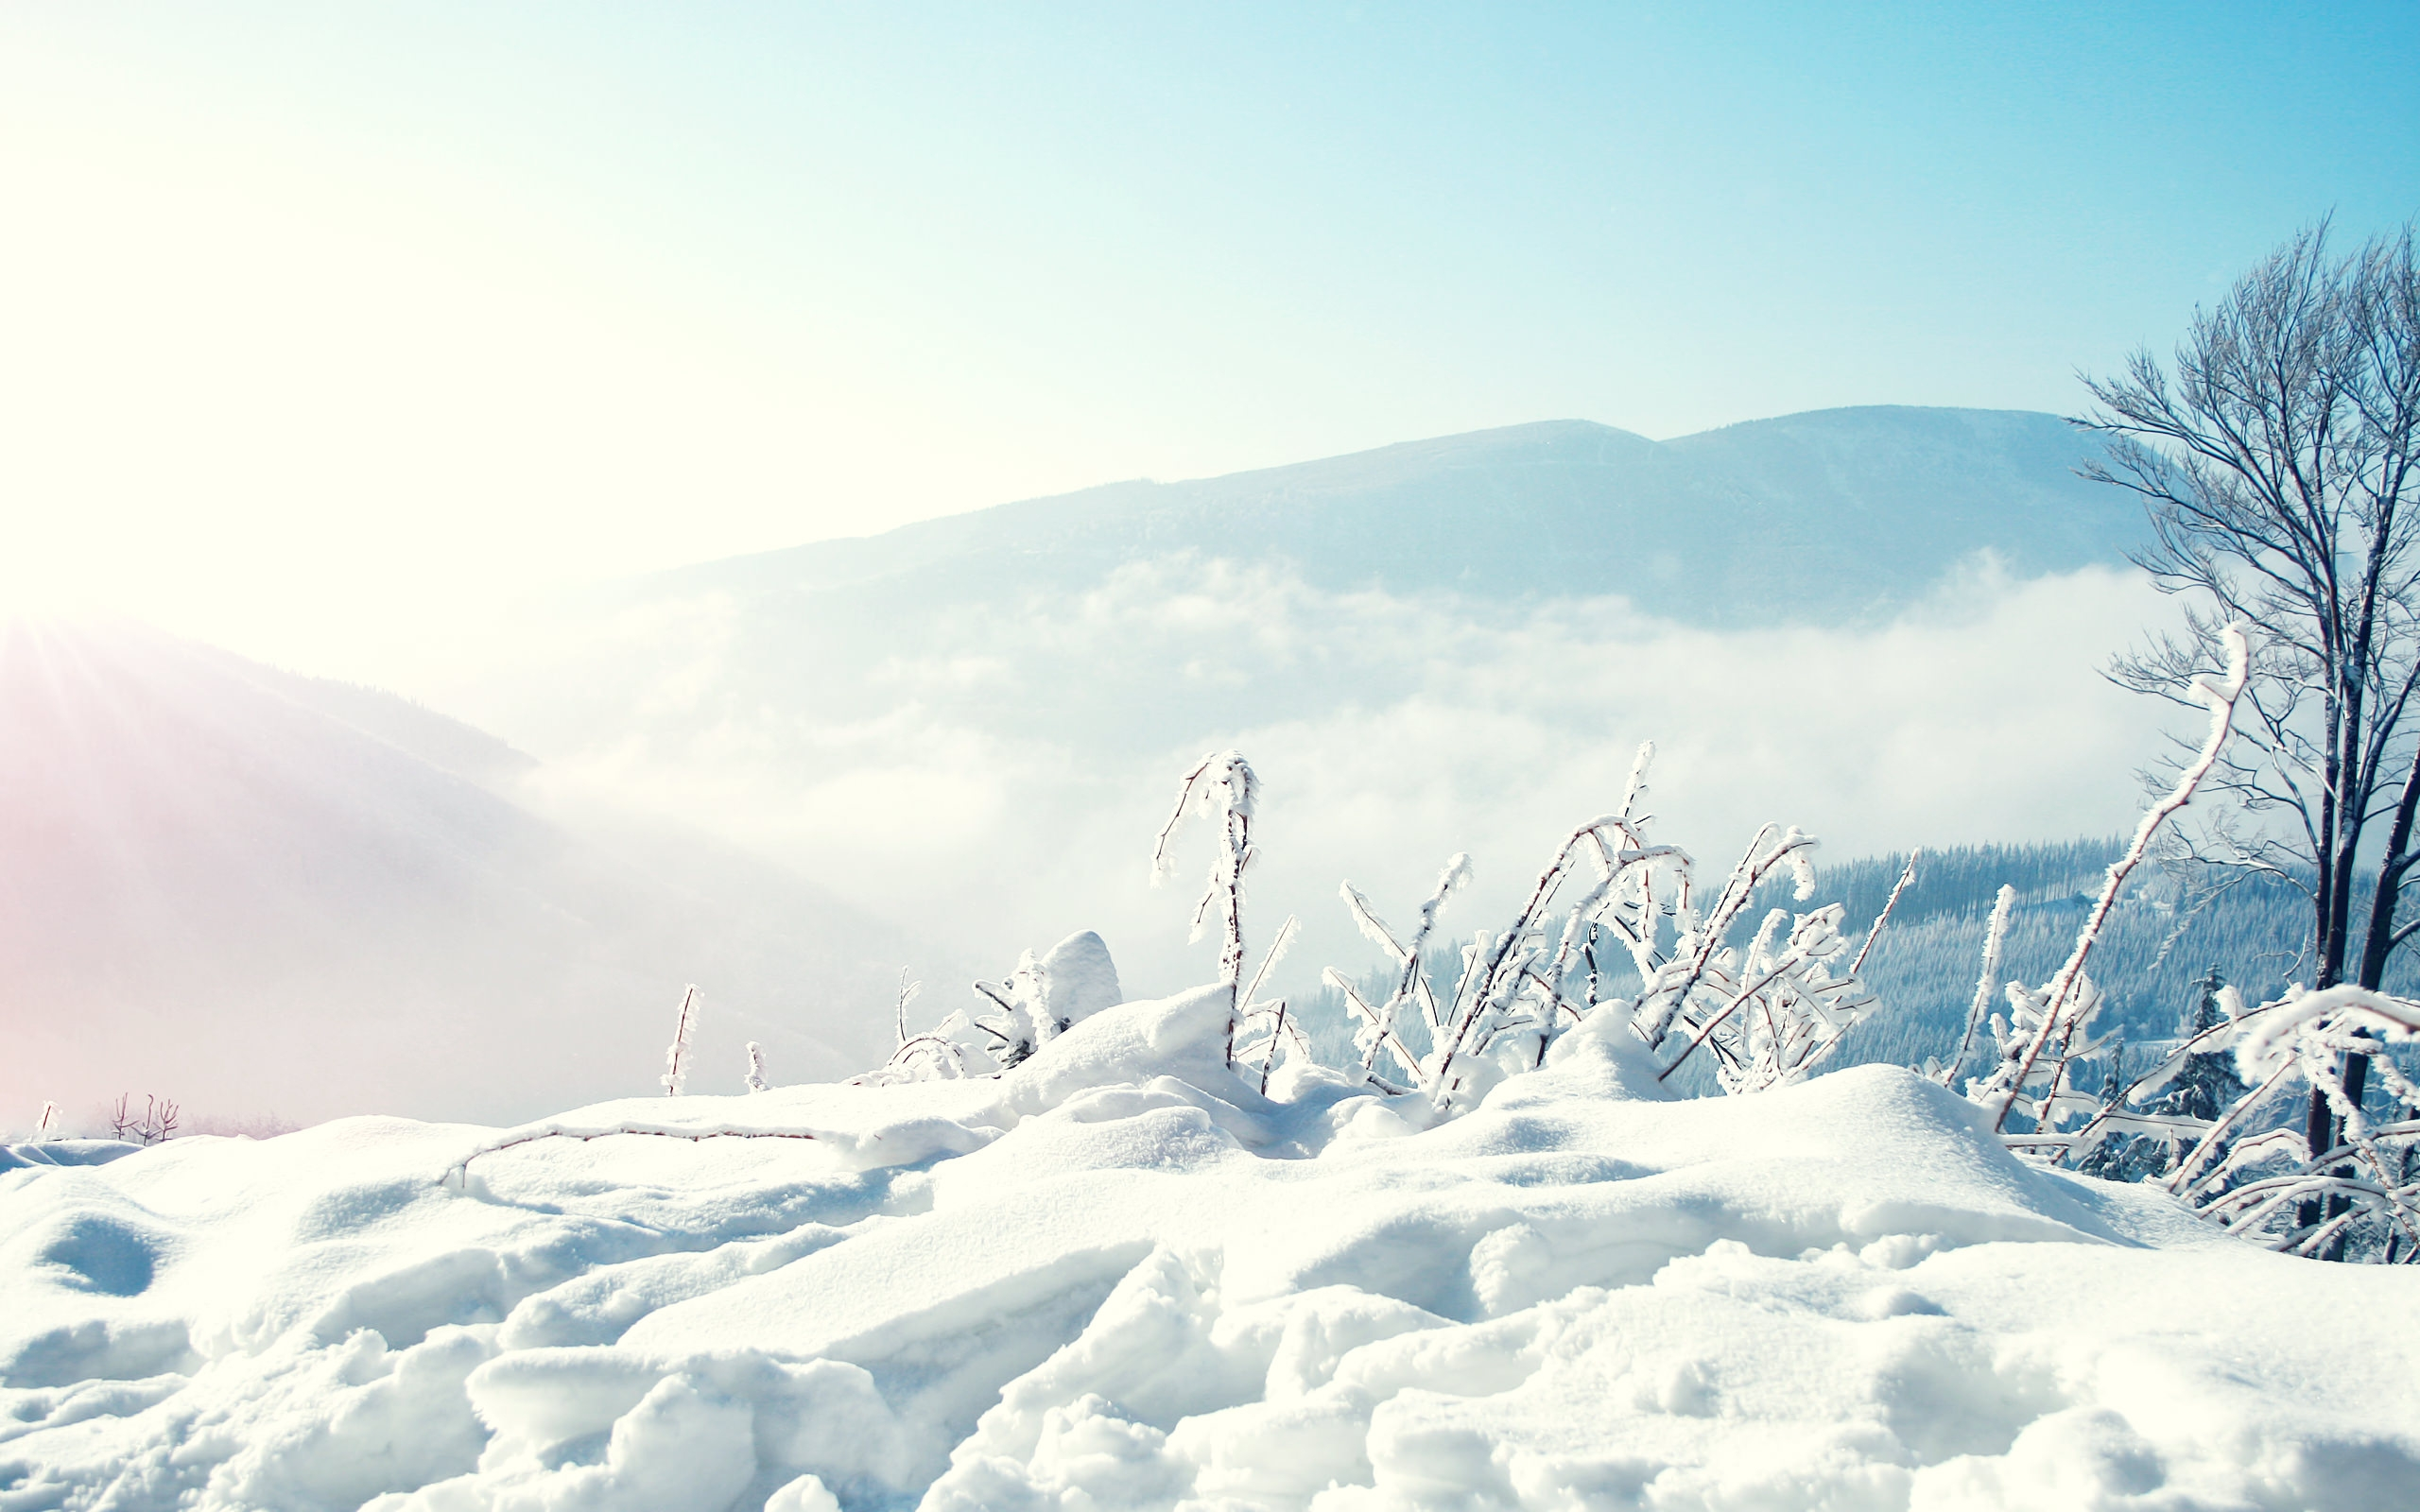 Snow Winter Mountains Wallpaper